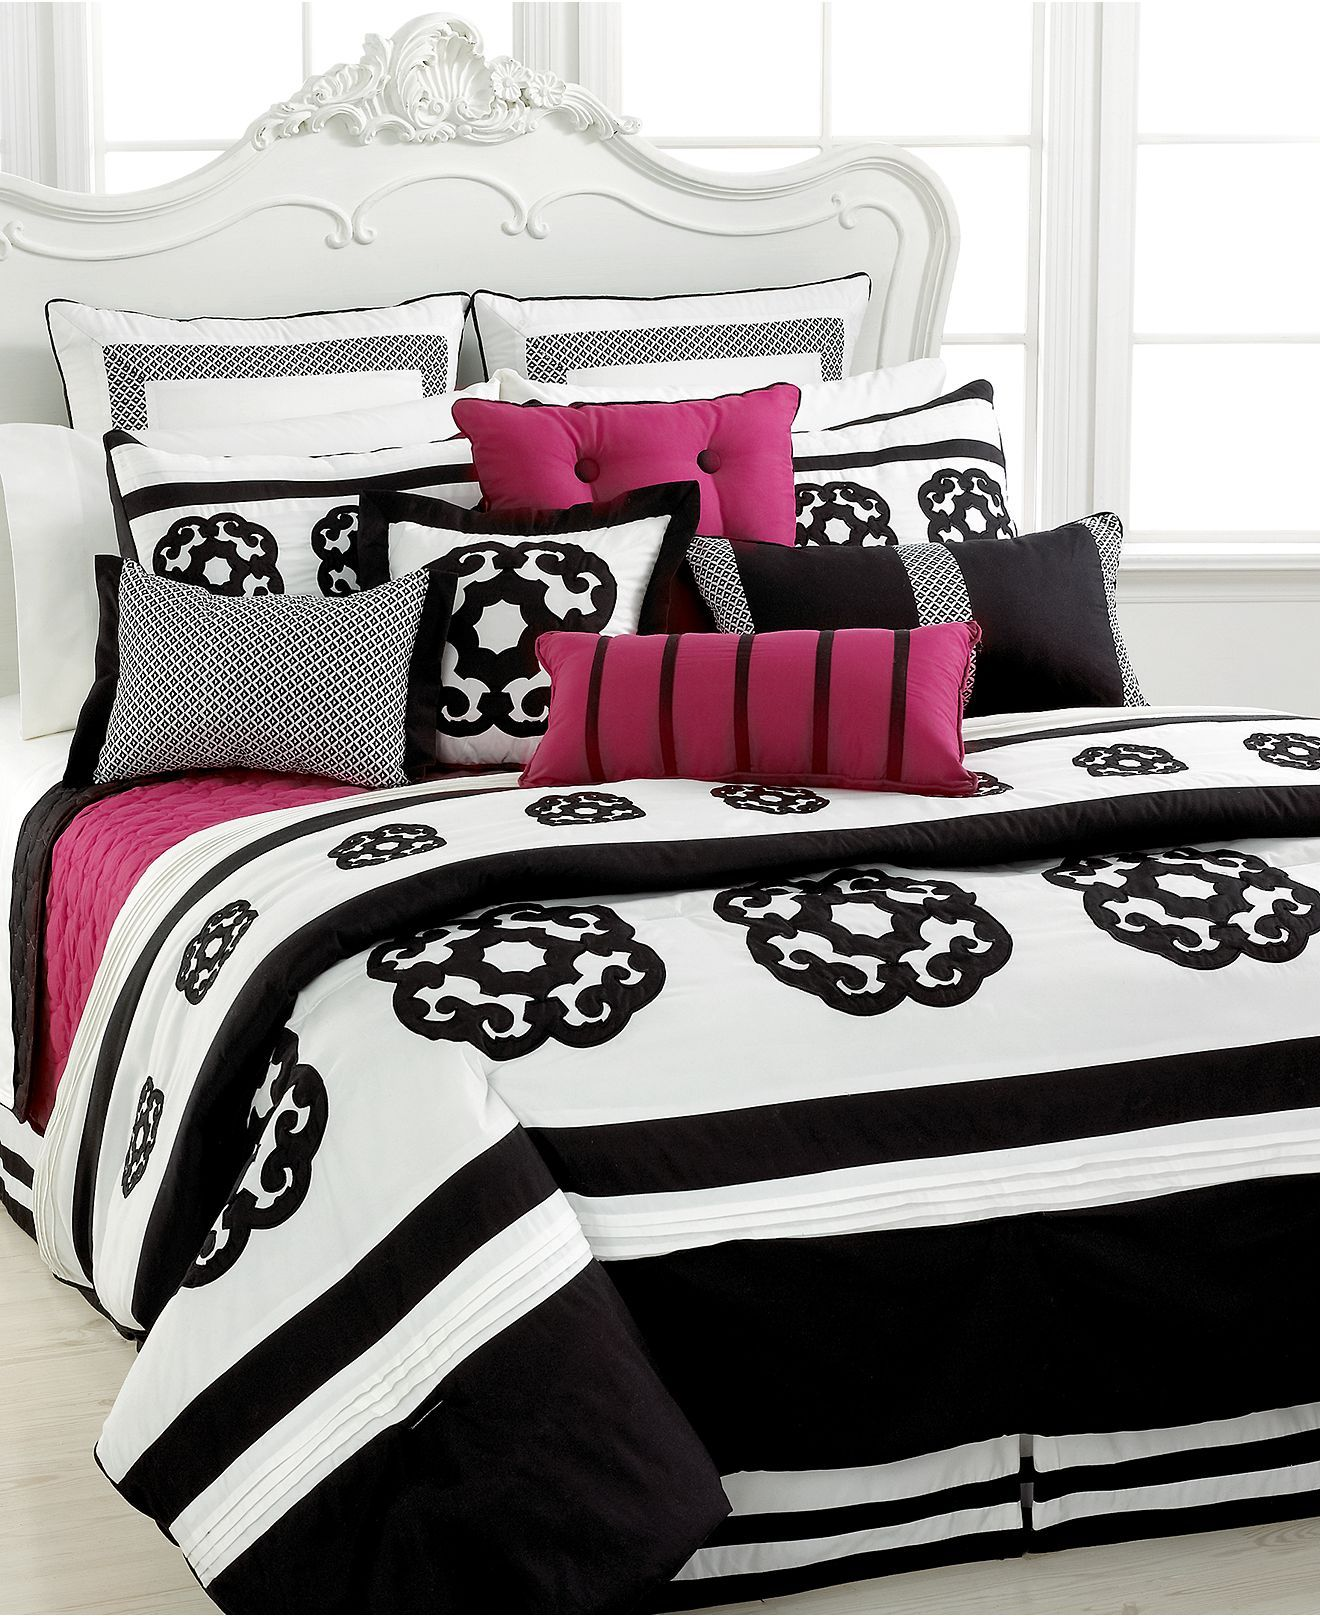 Twin bedding guest room - Sabina 12 Piece Full Comforter Set Macy S For Guest Room